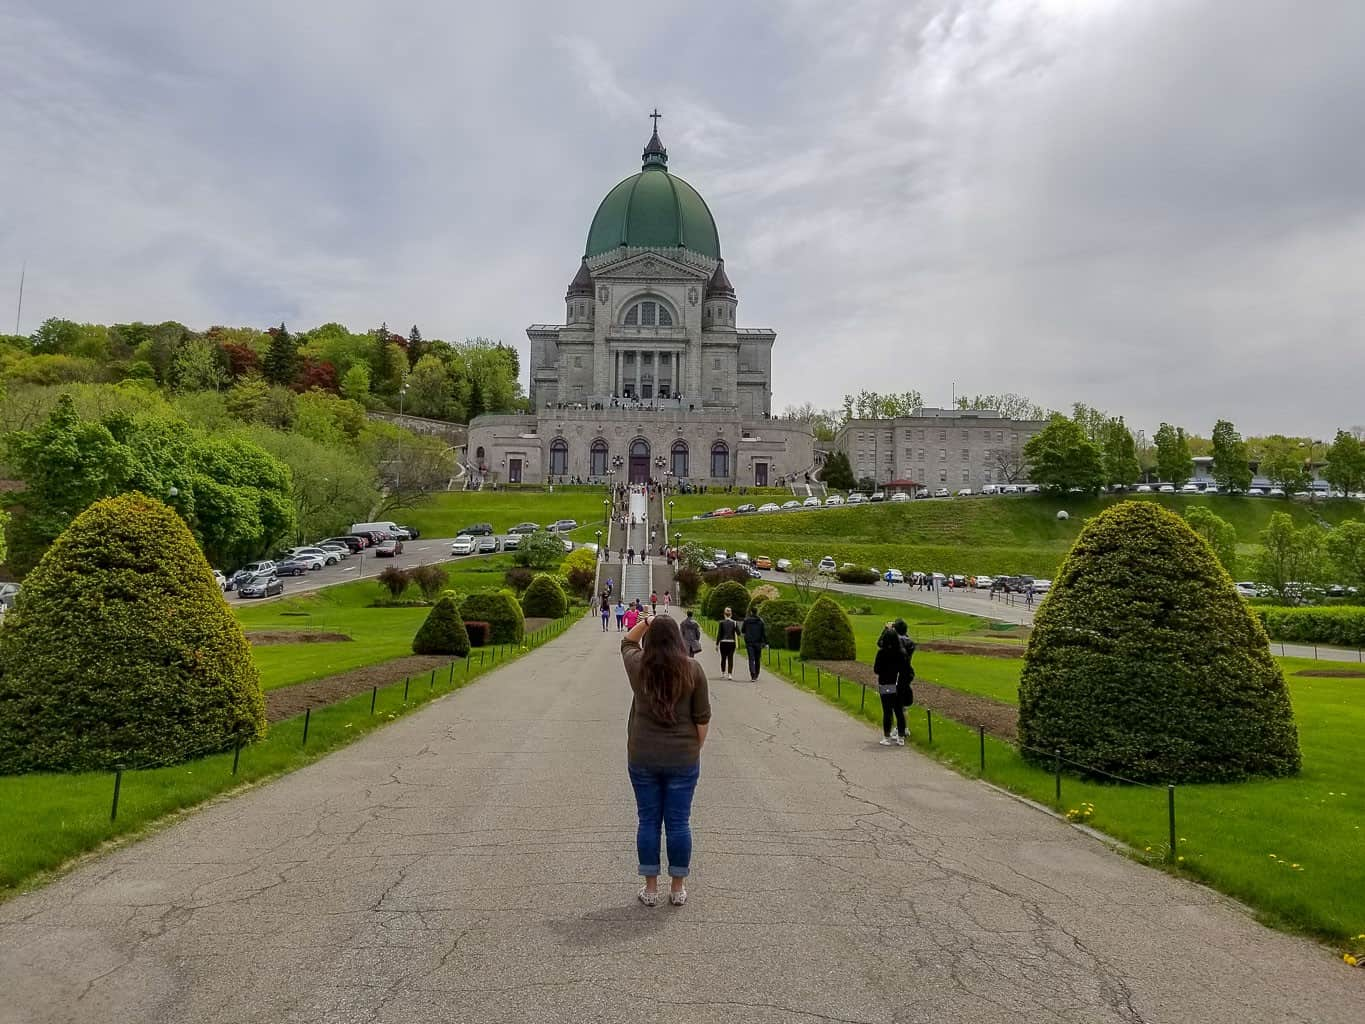 Visiting Montreal and Quebec City is one of the reasons to visit Canada